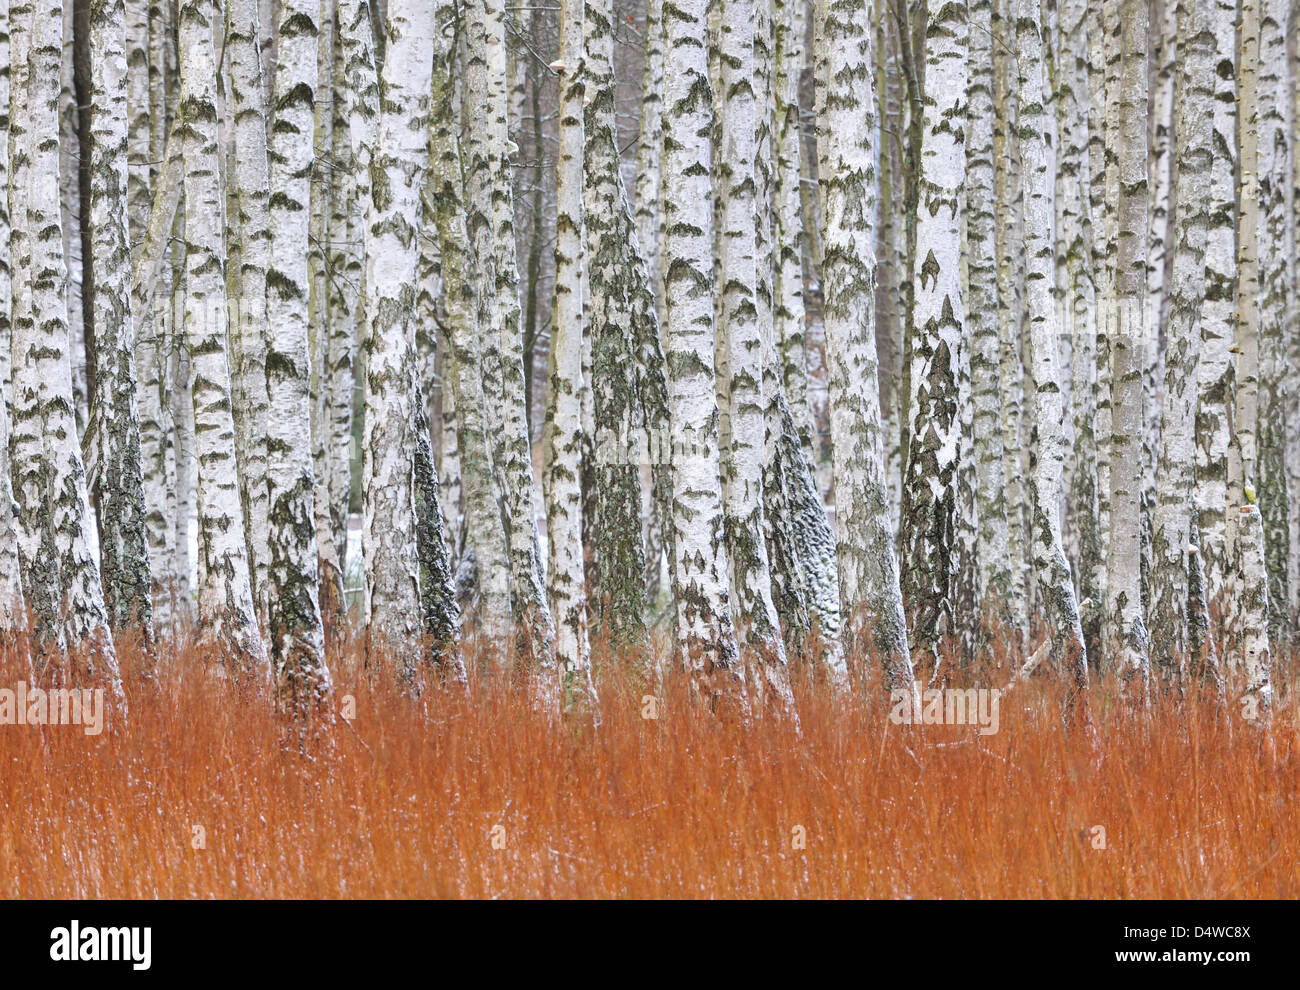 Forest of silver birch trees in a row, Gunnebo, Mölndal, Sweden, Europe - Stock Image